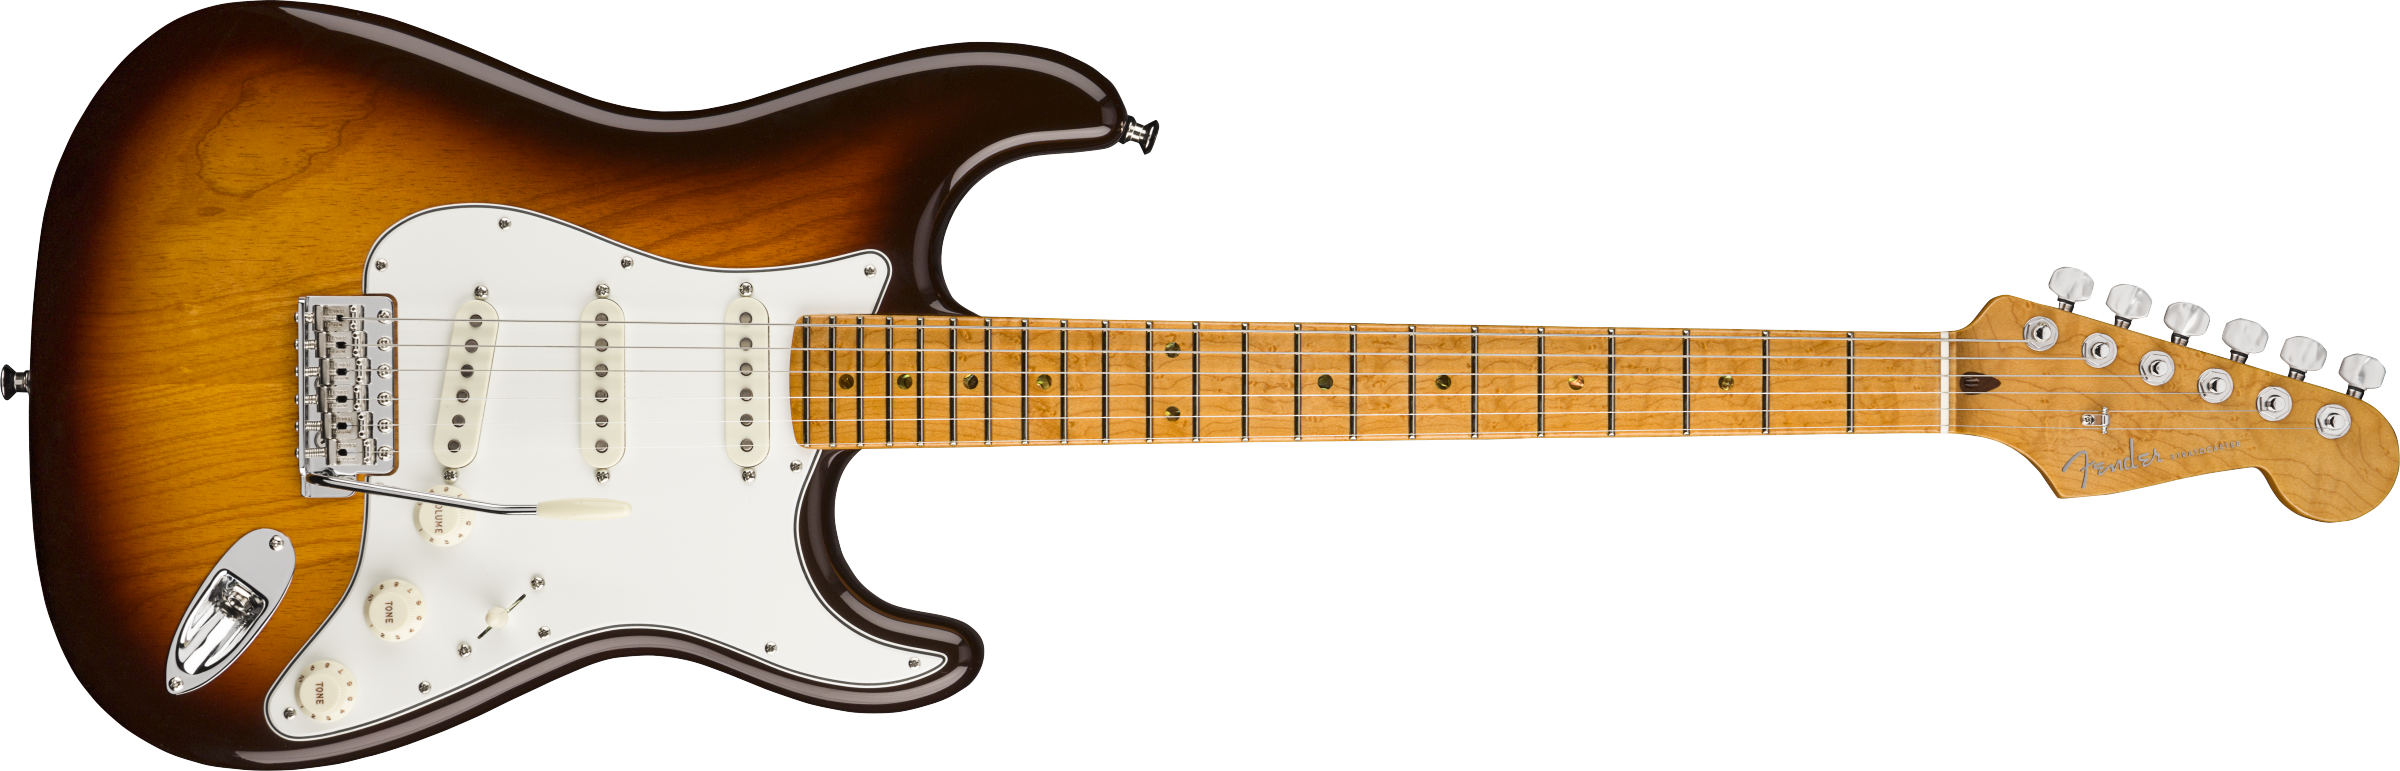 FENDER-American-Custom-Stratocaster-Maple-Fingerboard-Antique-Burst-NOS-sku-571005113